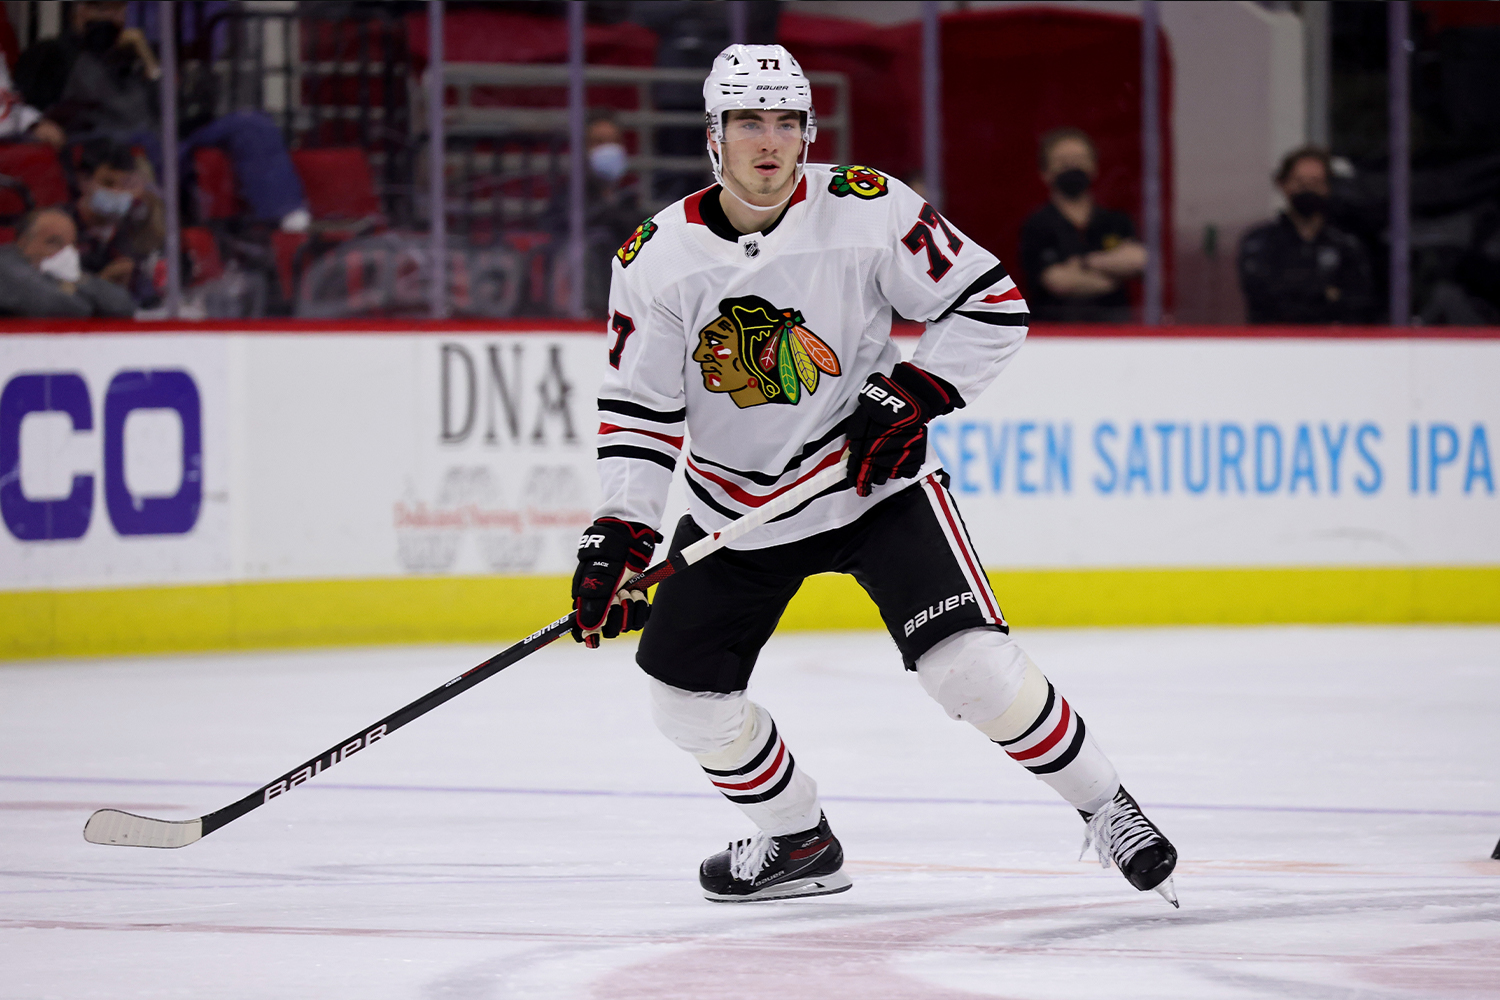 Kirby Dach #77 of the Chicago Blackhawks skates for position on the ice during an NHL game against the Carolina Hurricanes on May 3, 2021